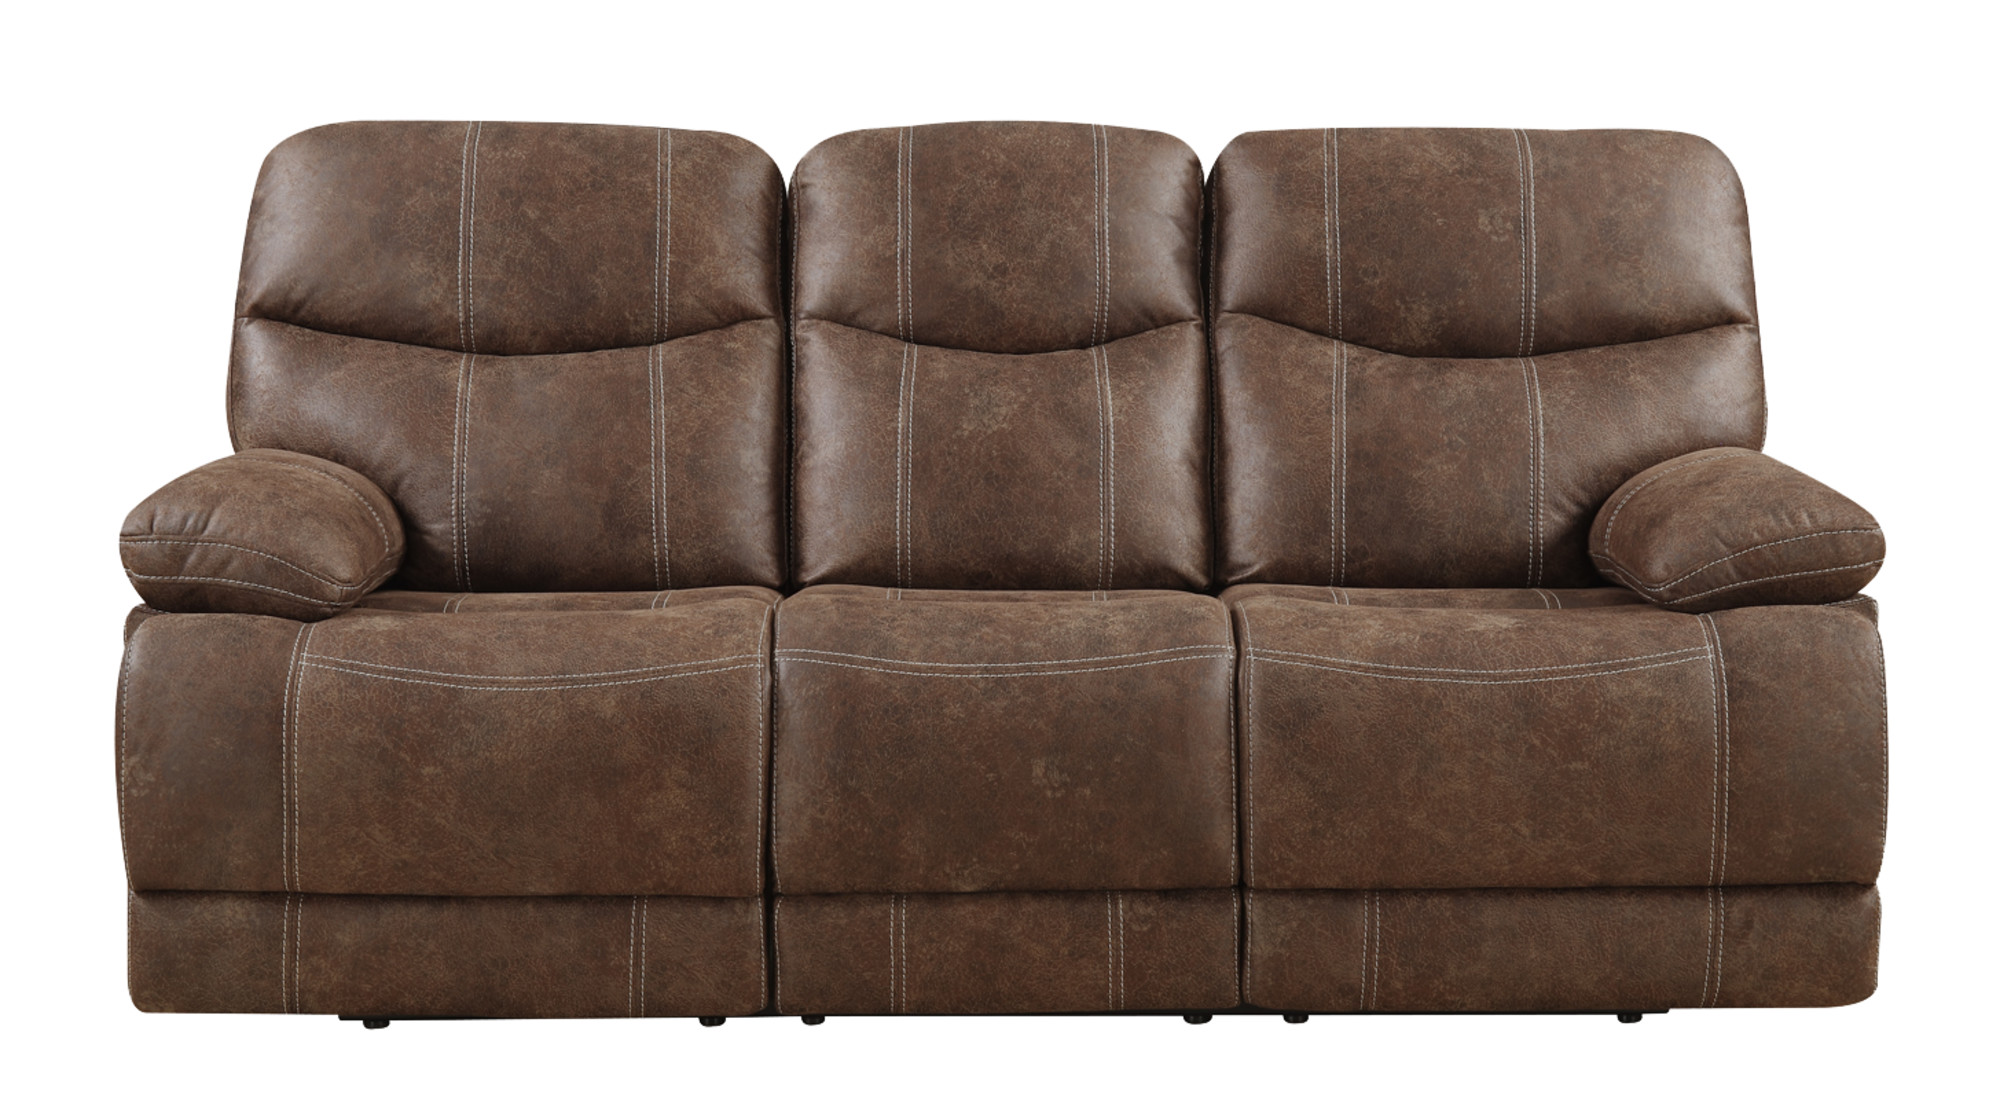 Pleasant Emerald Home Earl Brown Reclining Sofa With Faux Leather Upholstery Dual Reclining Seats And Pillow Arms Andrewgaddart Wooden Chair Designs For Living Room Andrewgaddartcom